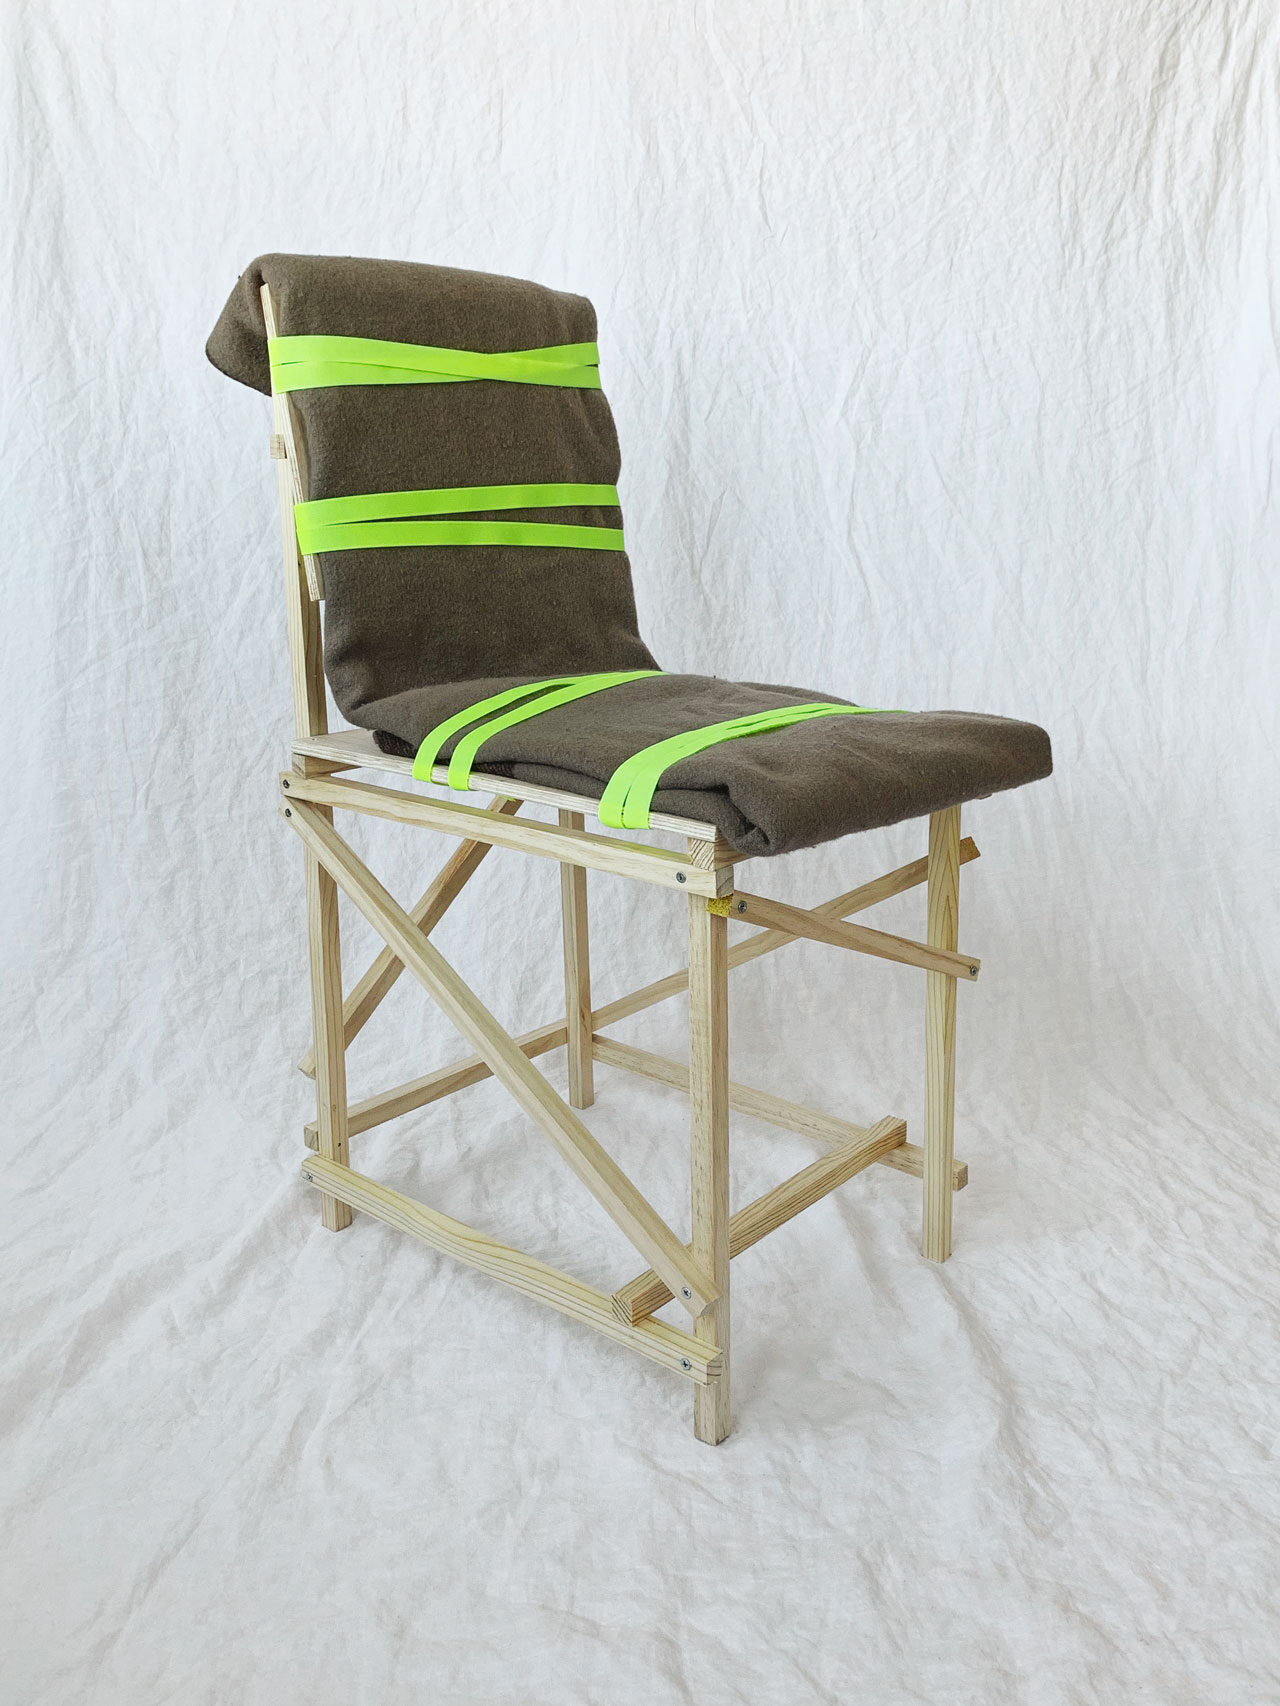 Rough And Ready DIY Chair by Tord Boontje